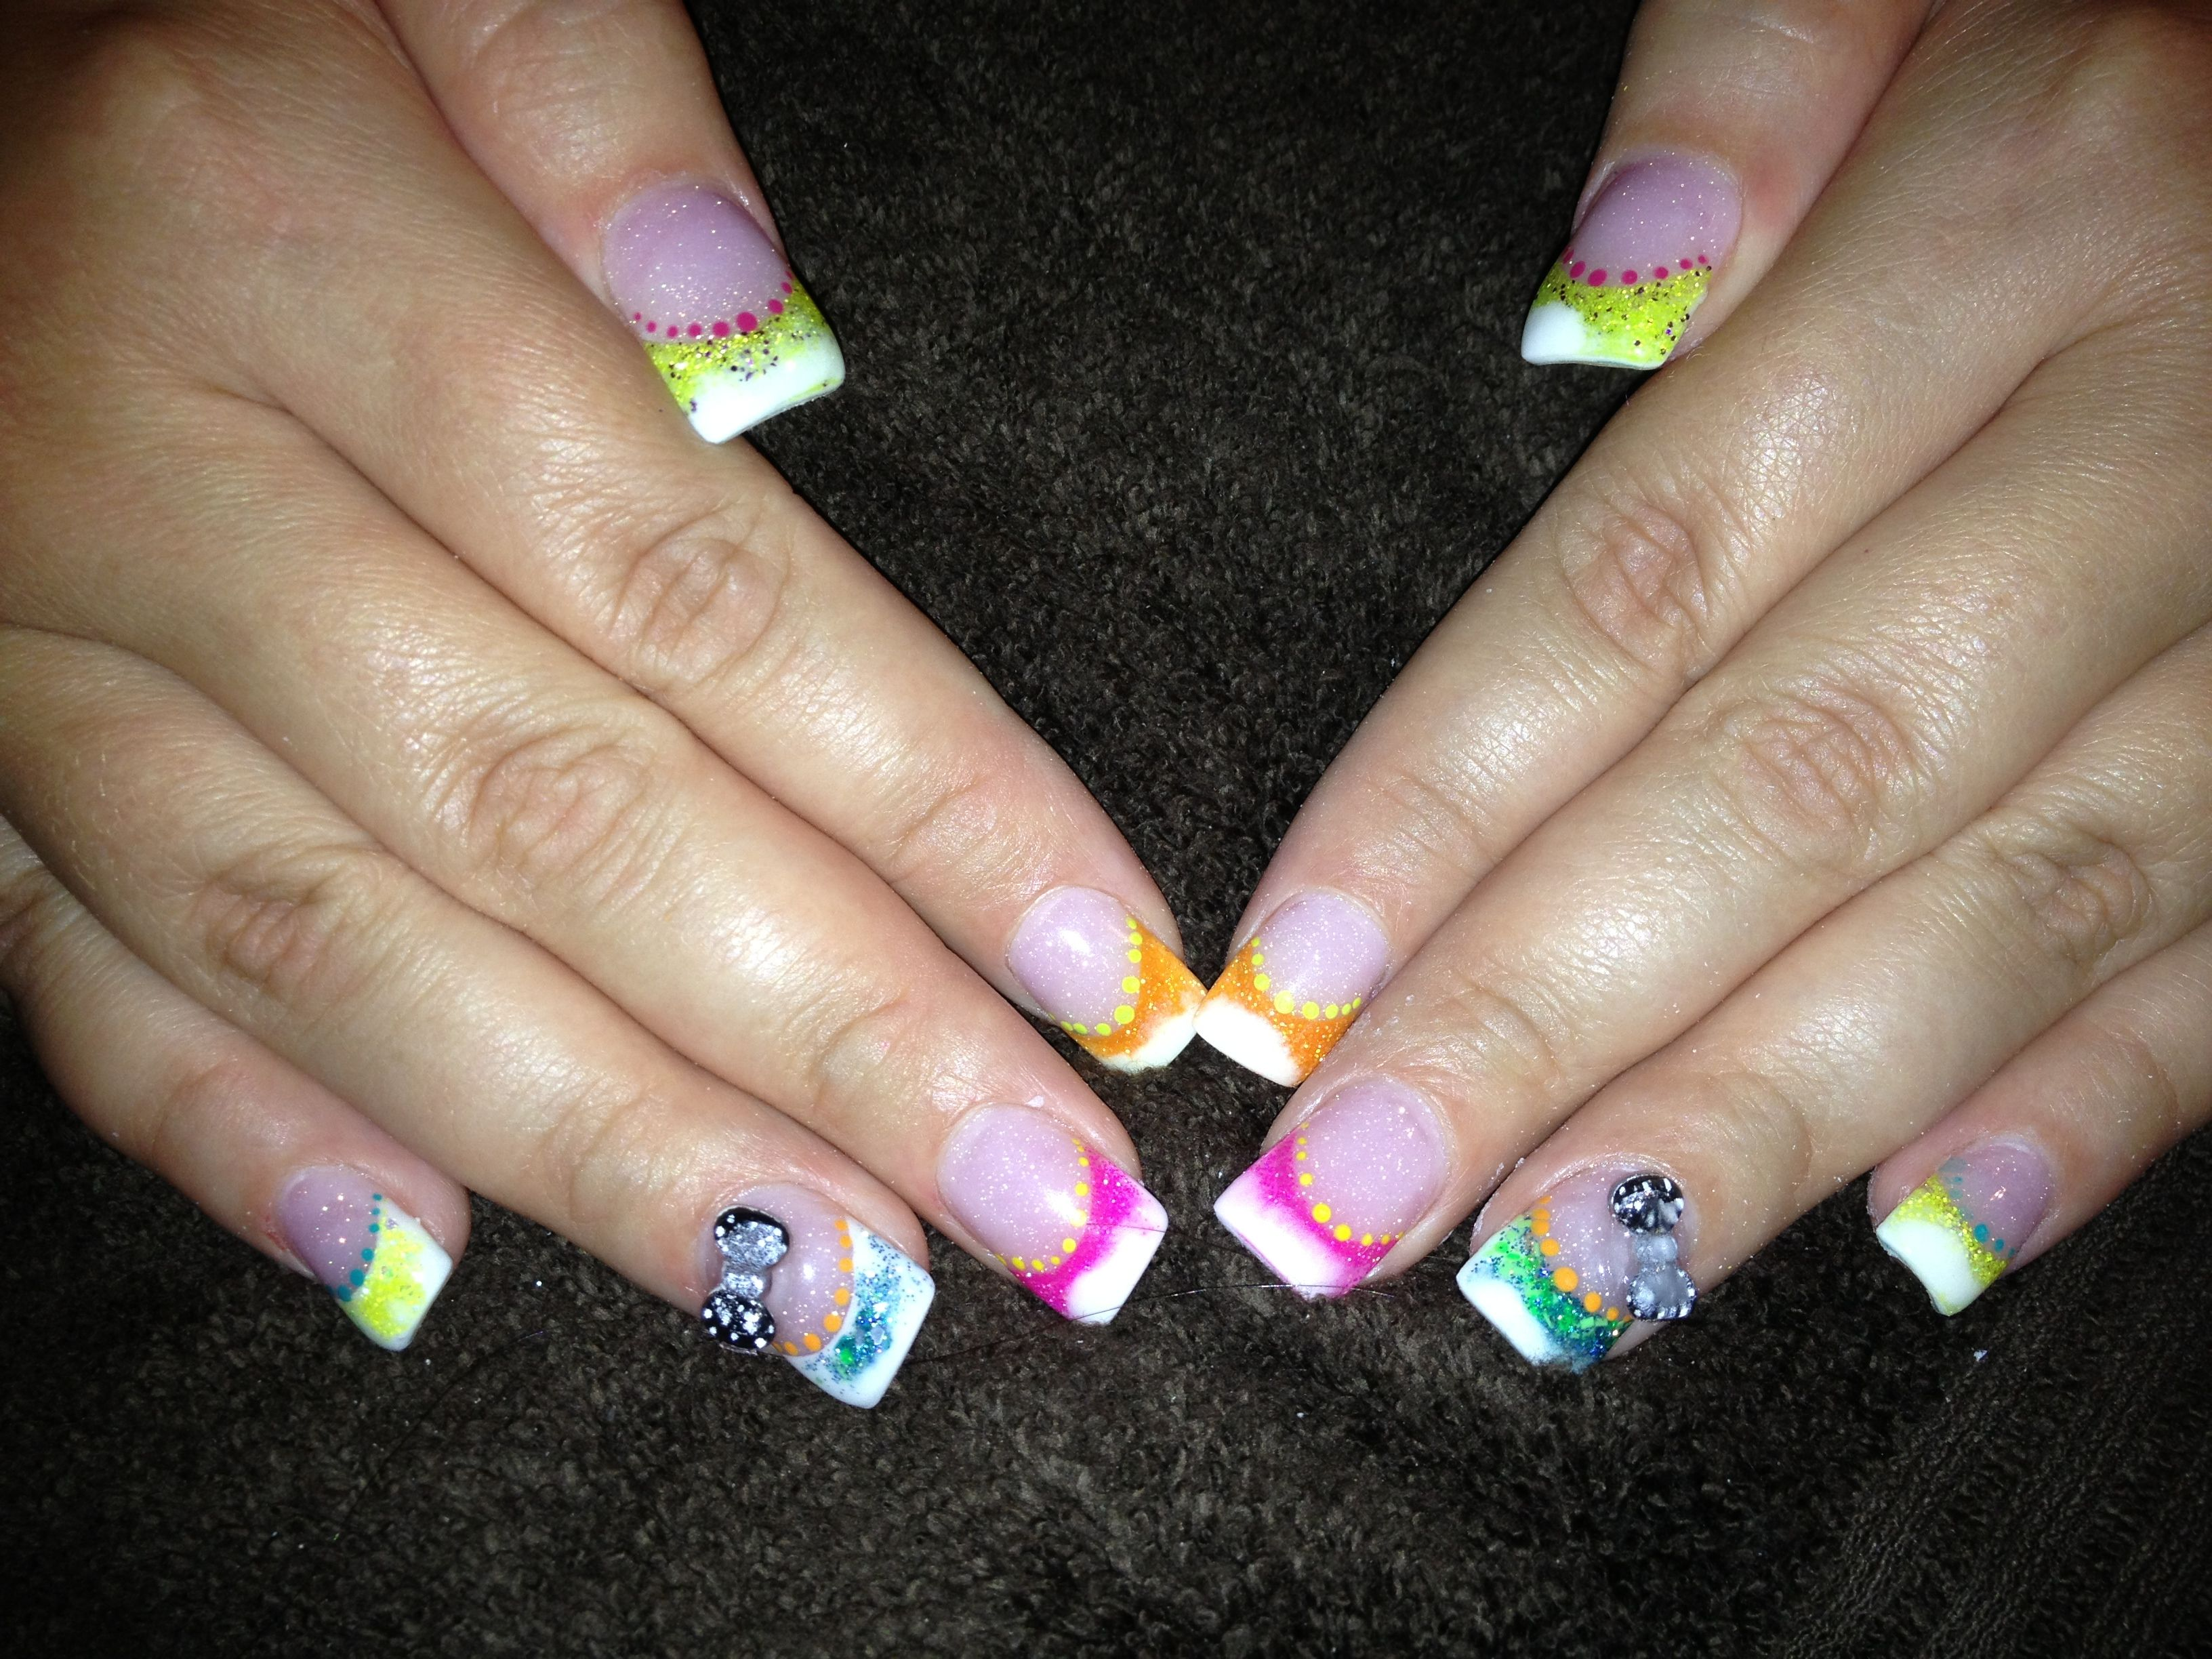 Colorful nail designs acrylic nails gallery nail art and nail bright summer color acrylic nail design saras nail designs bright summer color acrylic nail design prinsesfo prinsesfo Choice Image